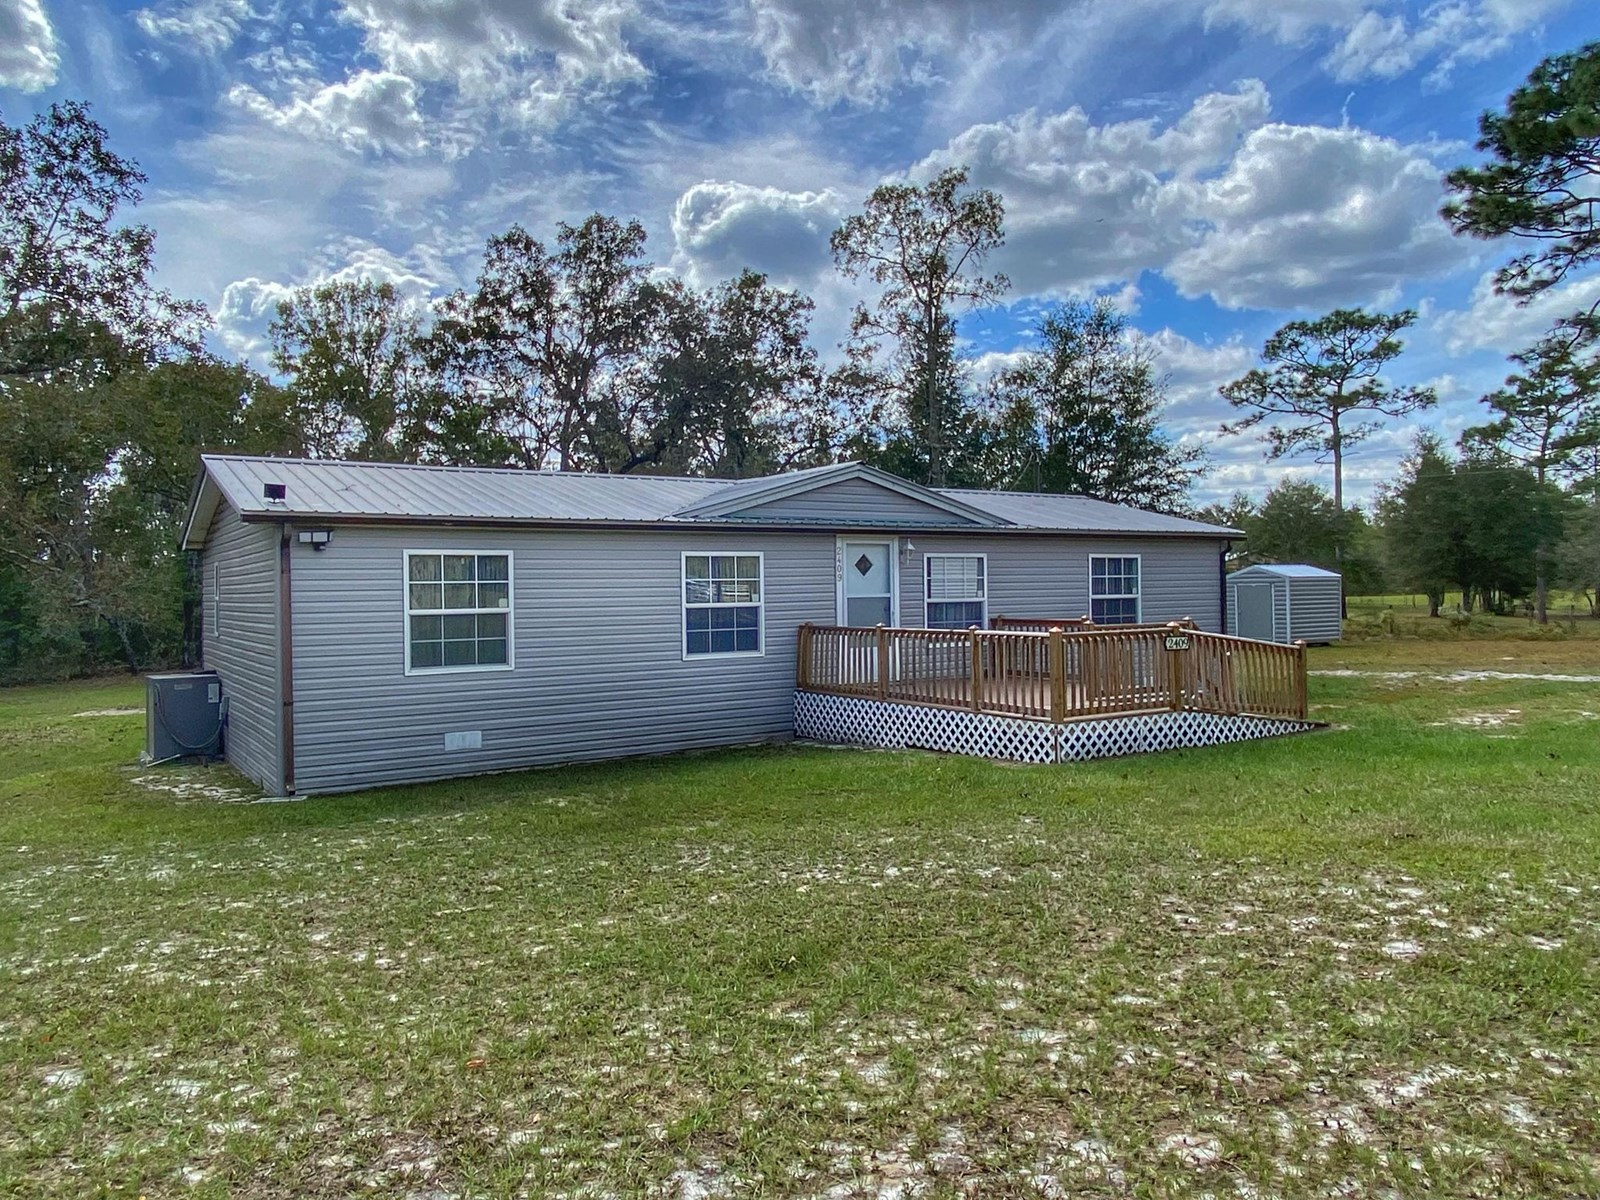 BEAUTIFUL MOBILE HOME WITH ACREAGE!